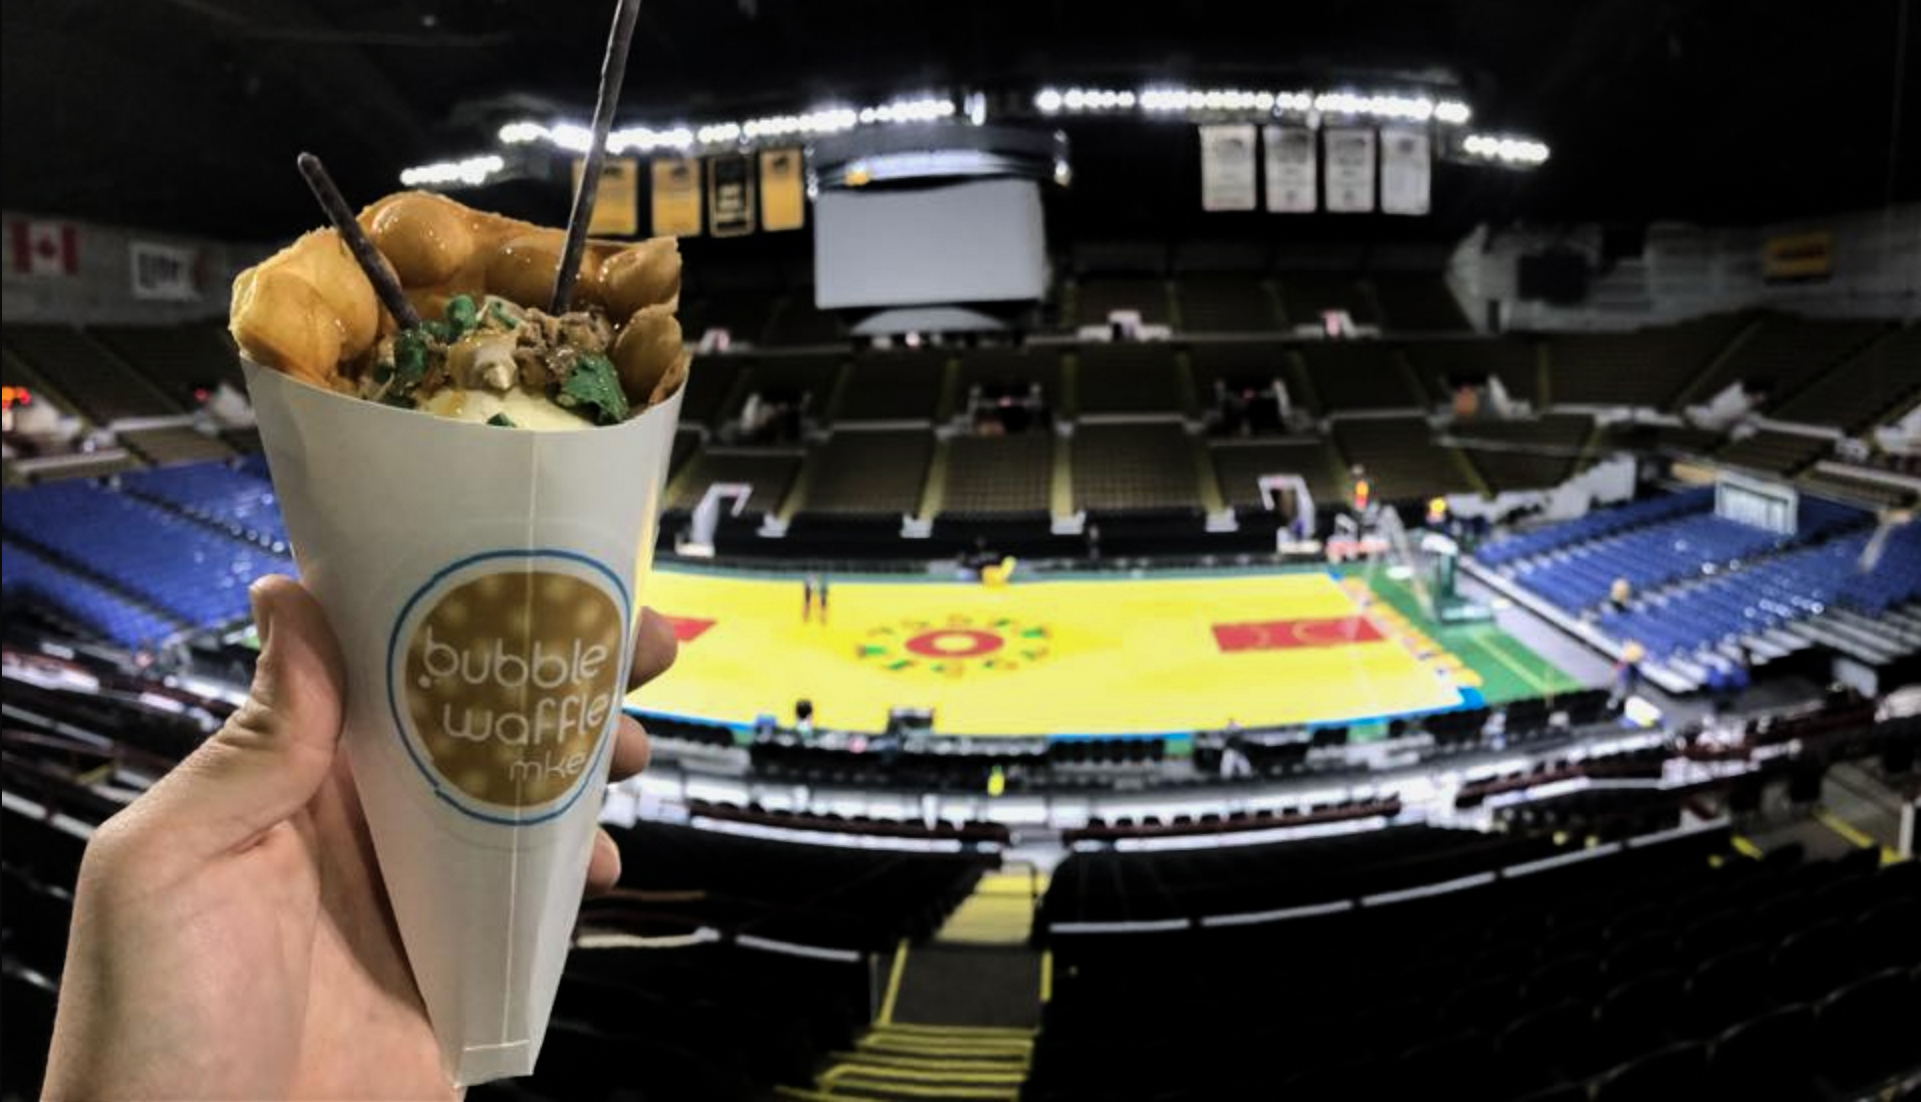 New at the UWM Panther Arena in 2017, Bubble Waffle MKE is taking Milwaukee by storm, one sports fan at a time!